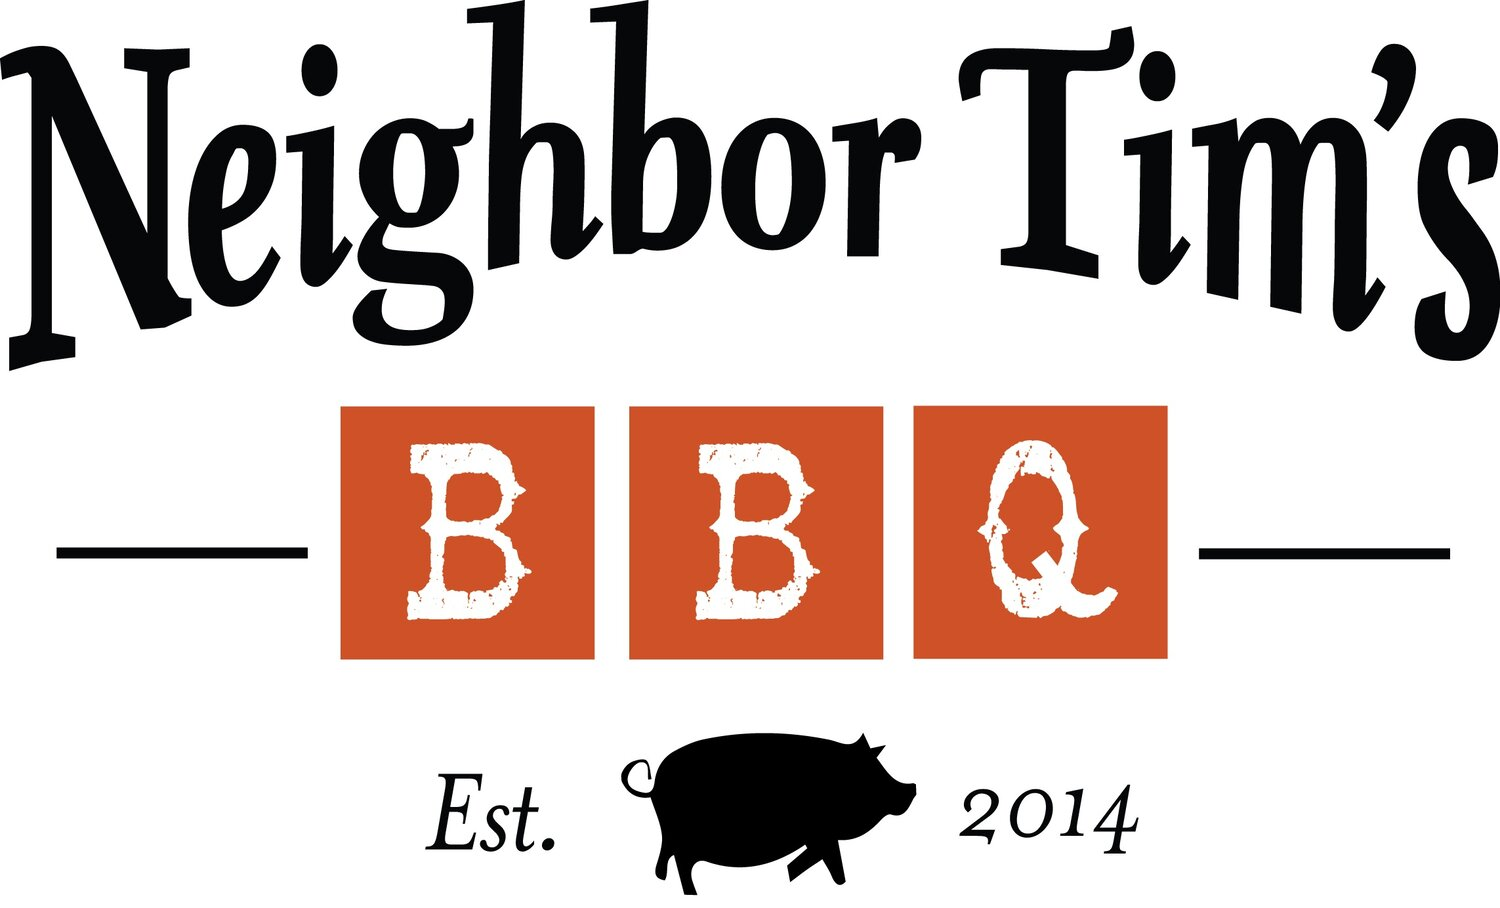 Neighbor Tim's BBQ Santa Barbara, CA